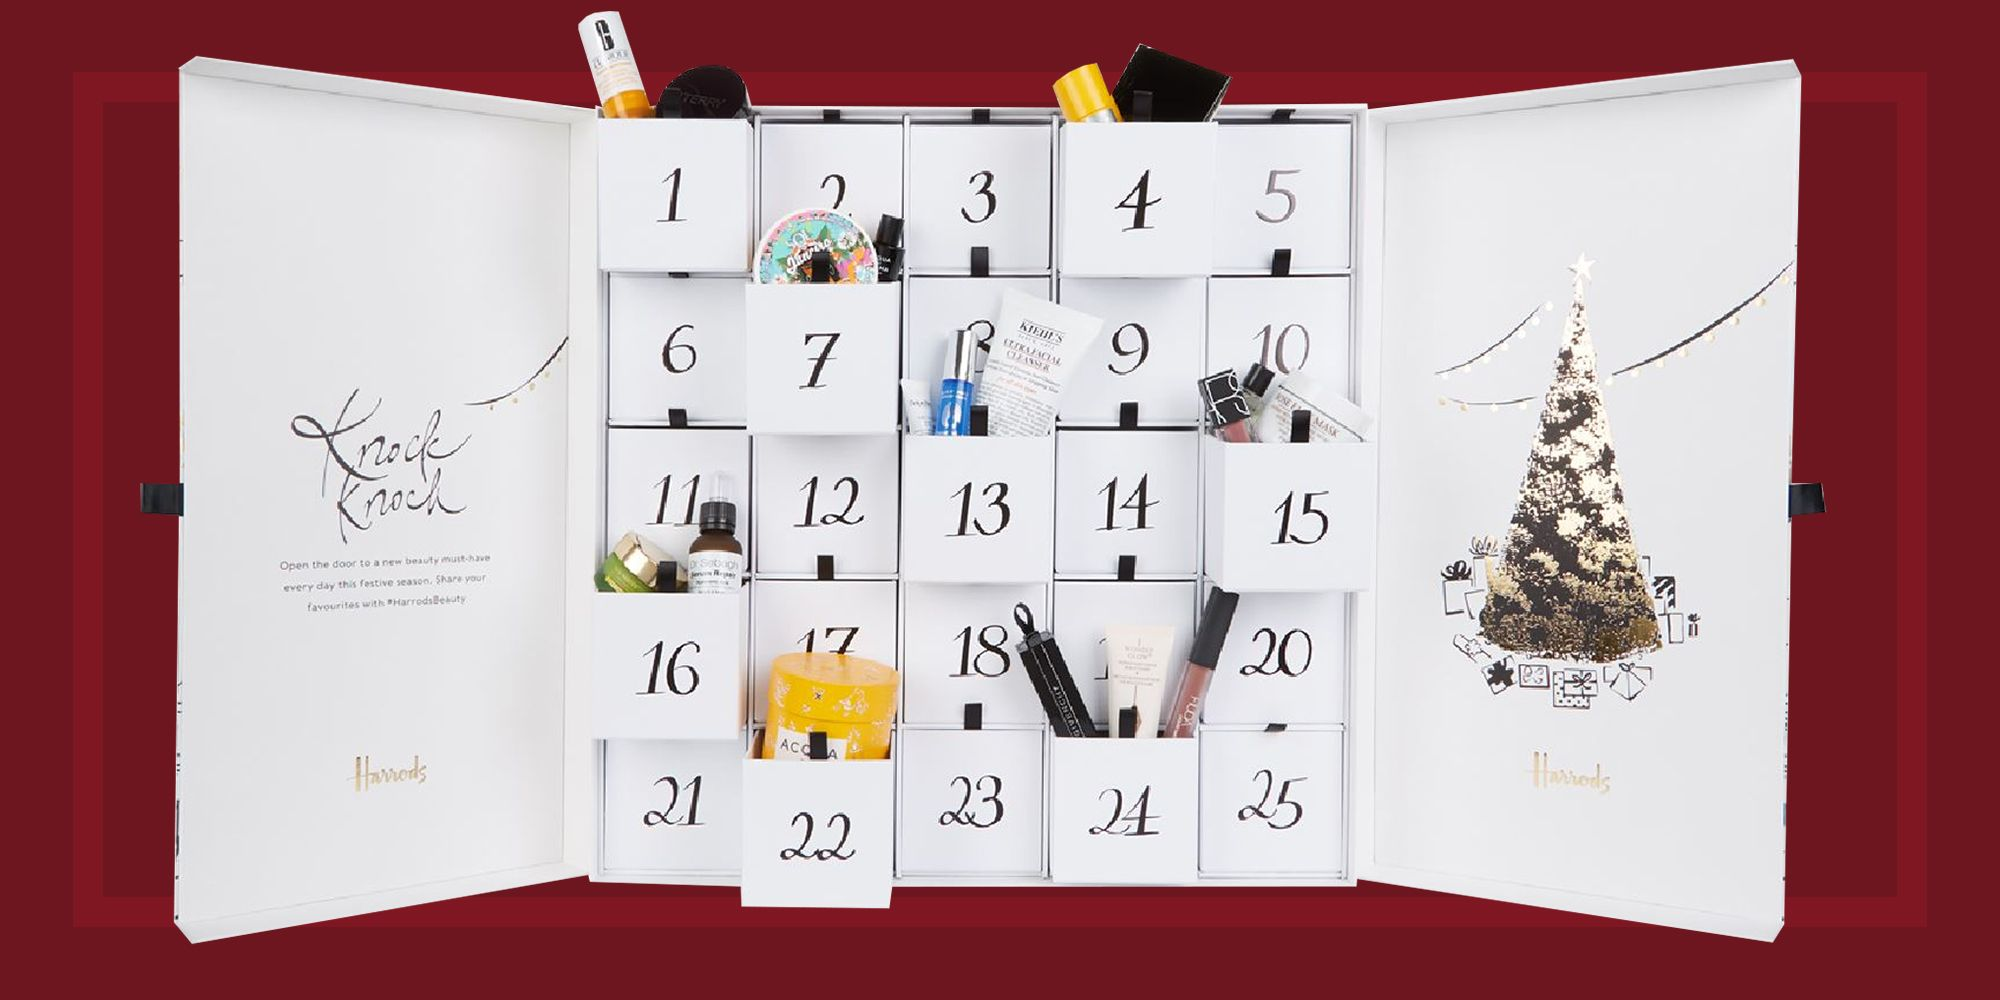 The Best Beauty Advent Calendars 2018 - Luxury Makeup, Cosmetic, and ...